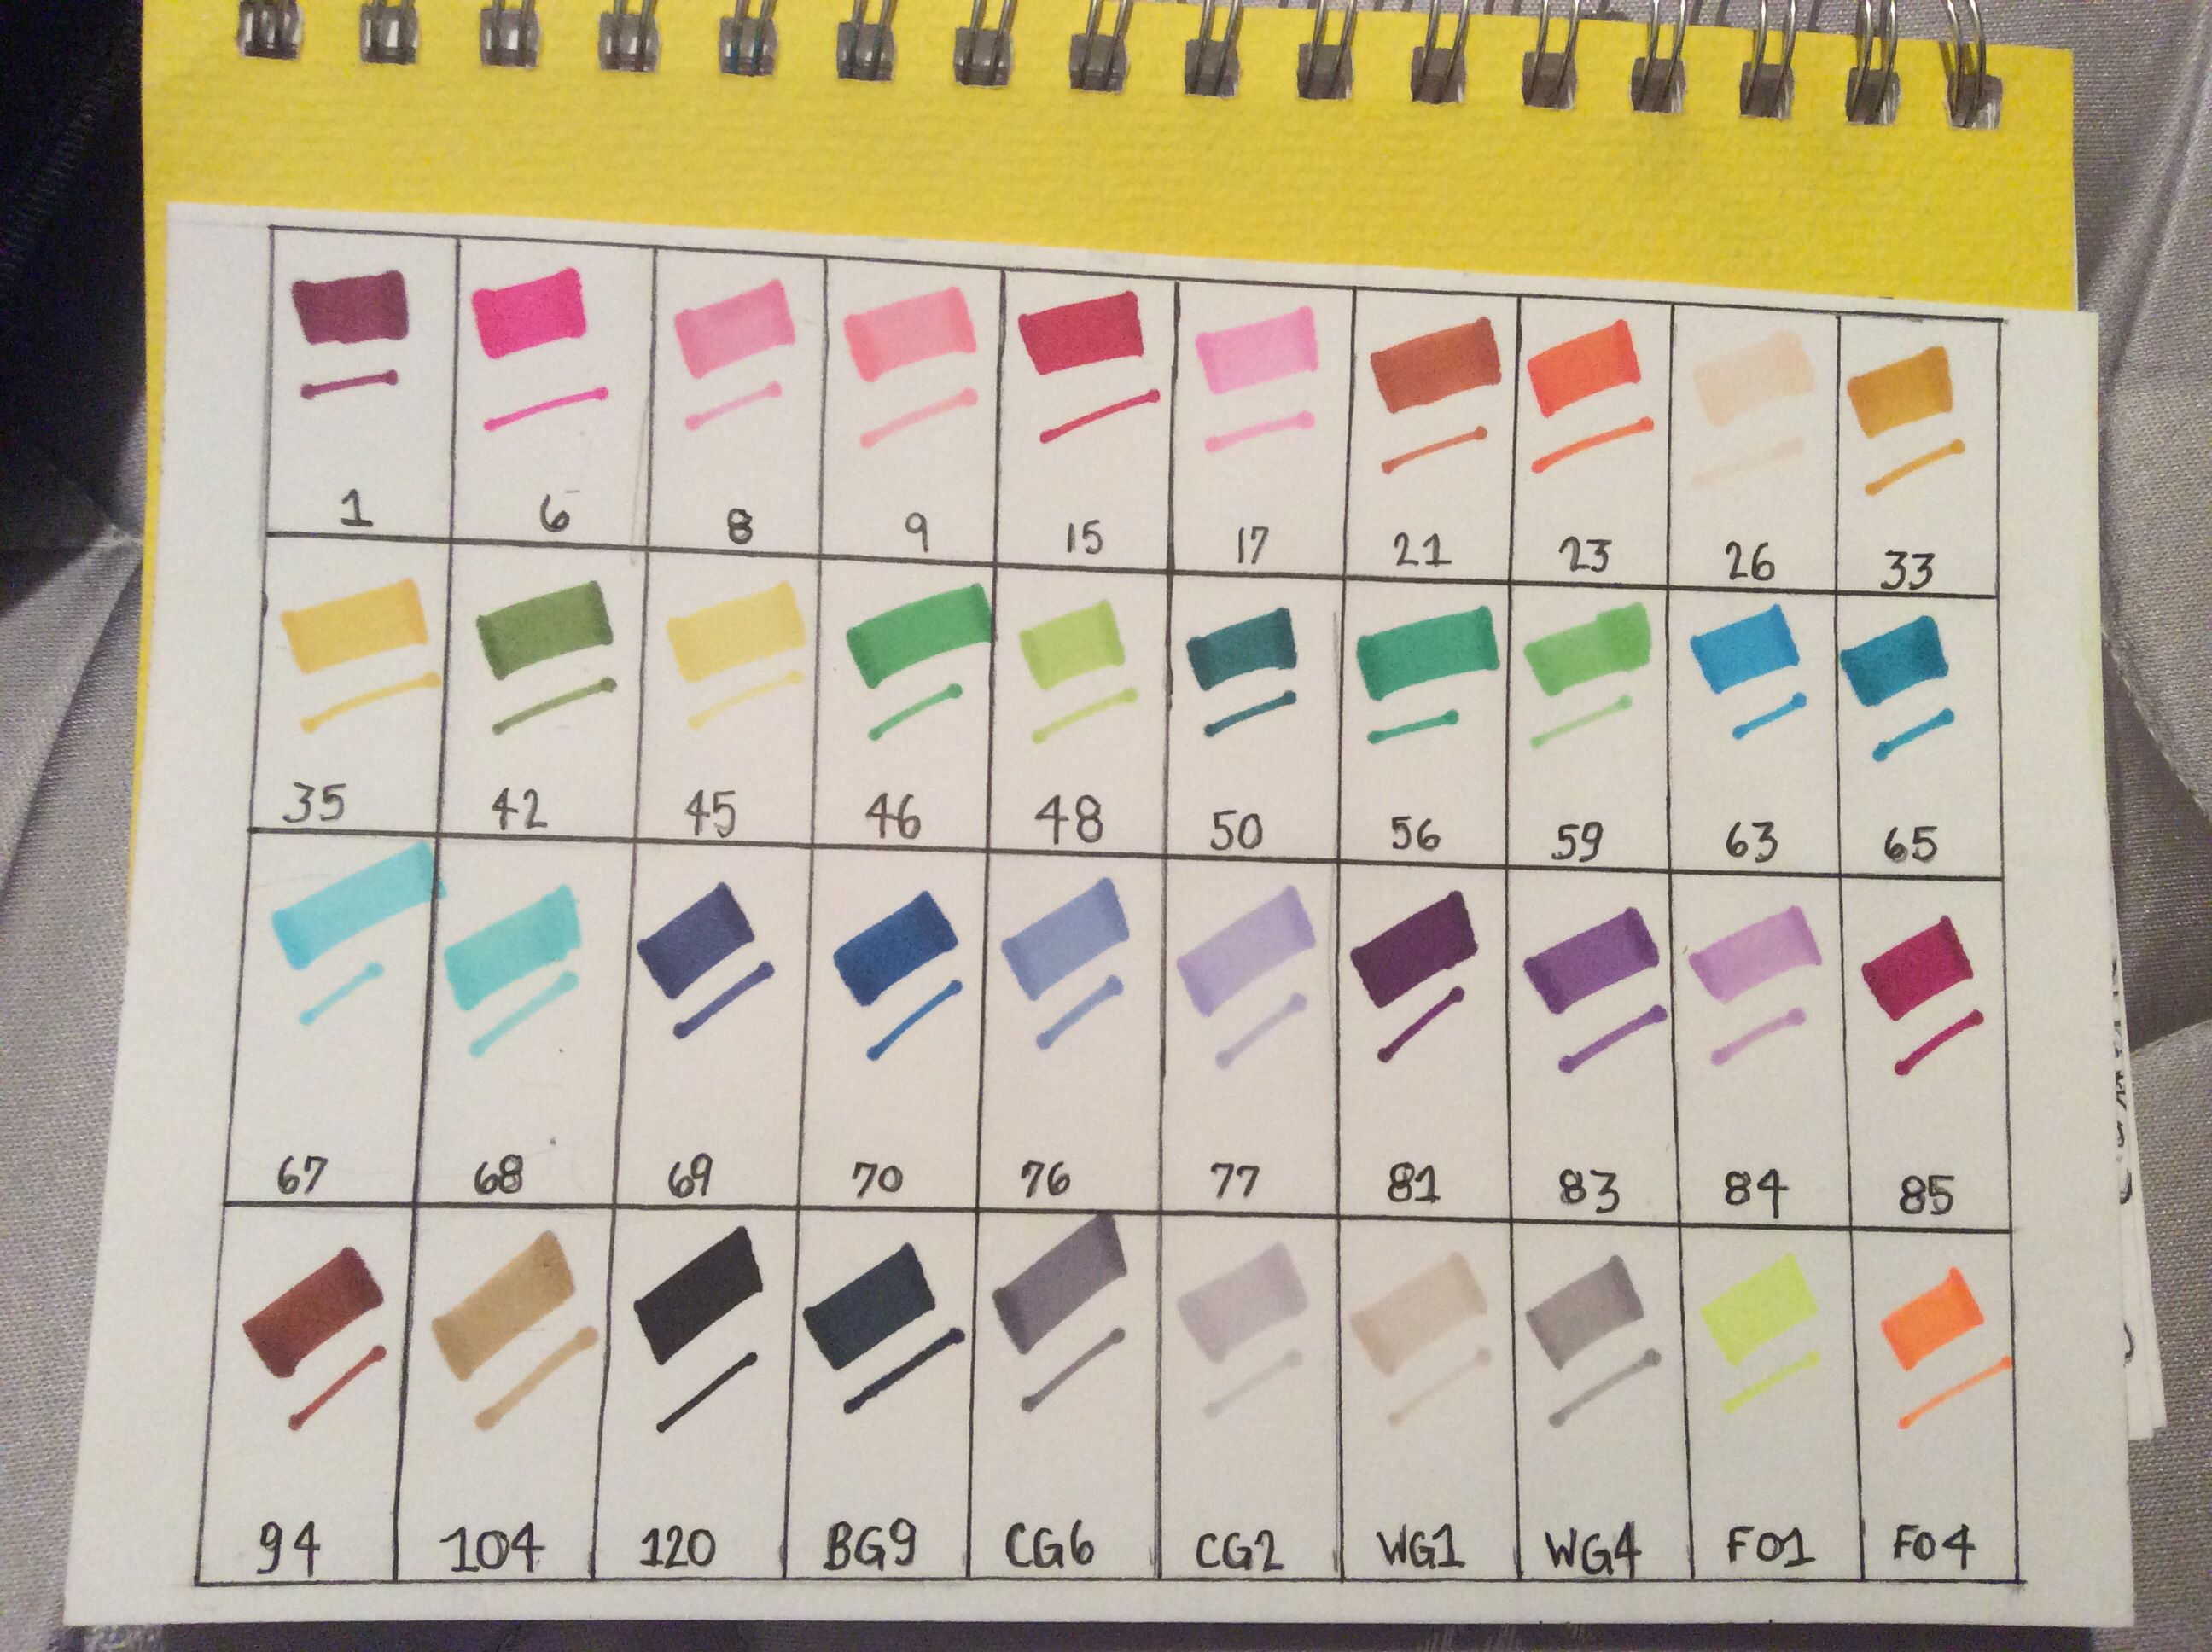 Ohuhu 40 Marker Color Chart Homemade Ohuhu Markers Markers Color Chart